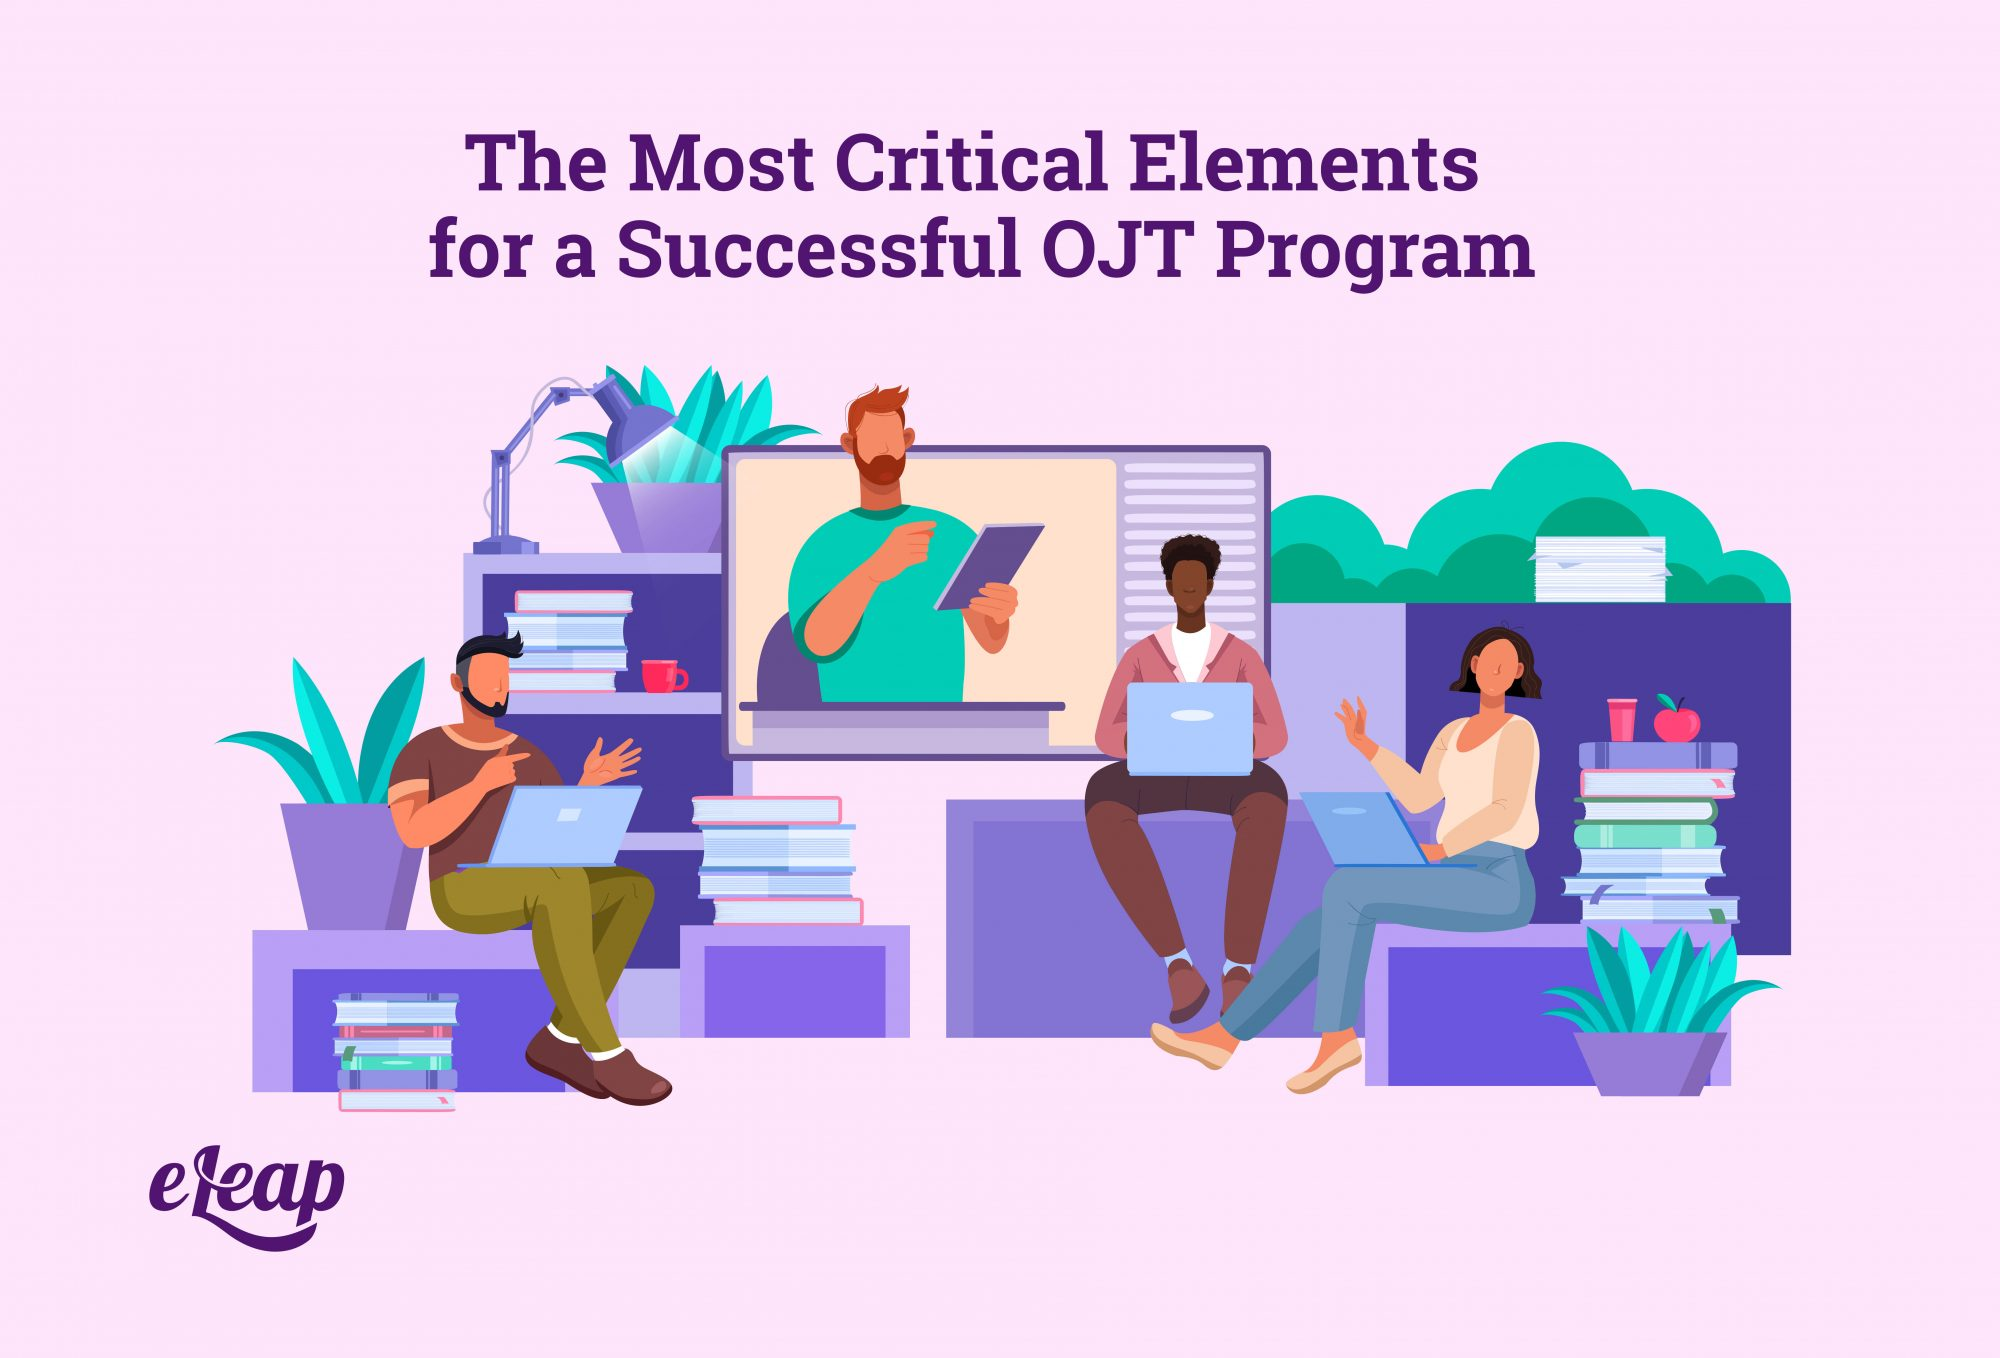 The Most Critical Elements for a Successful OJT Program